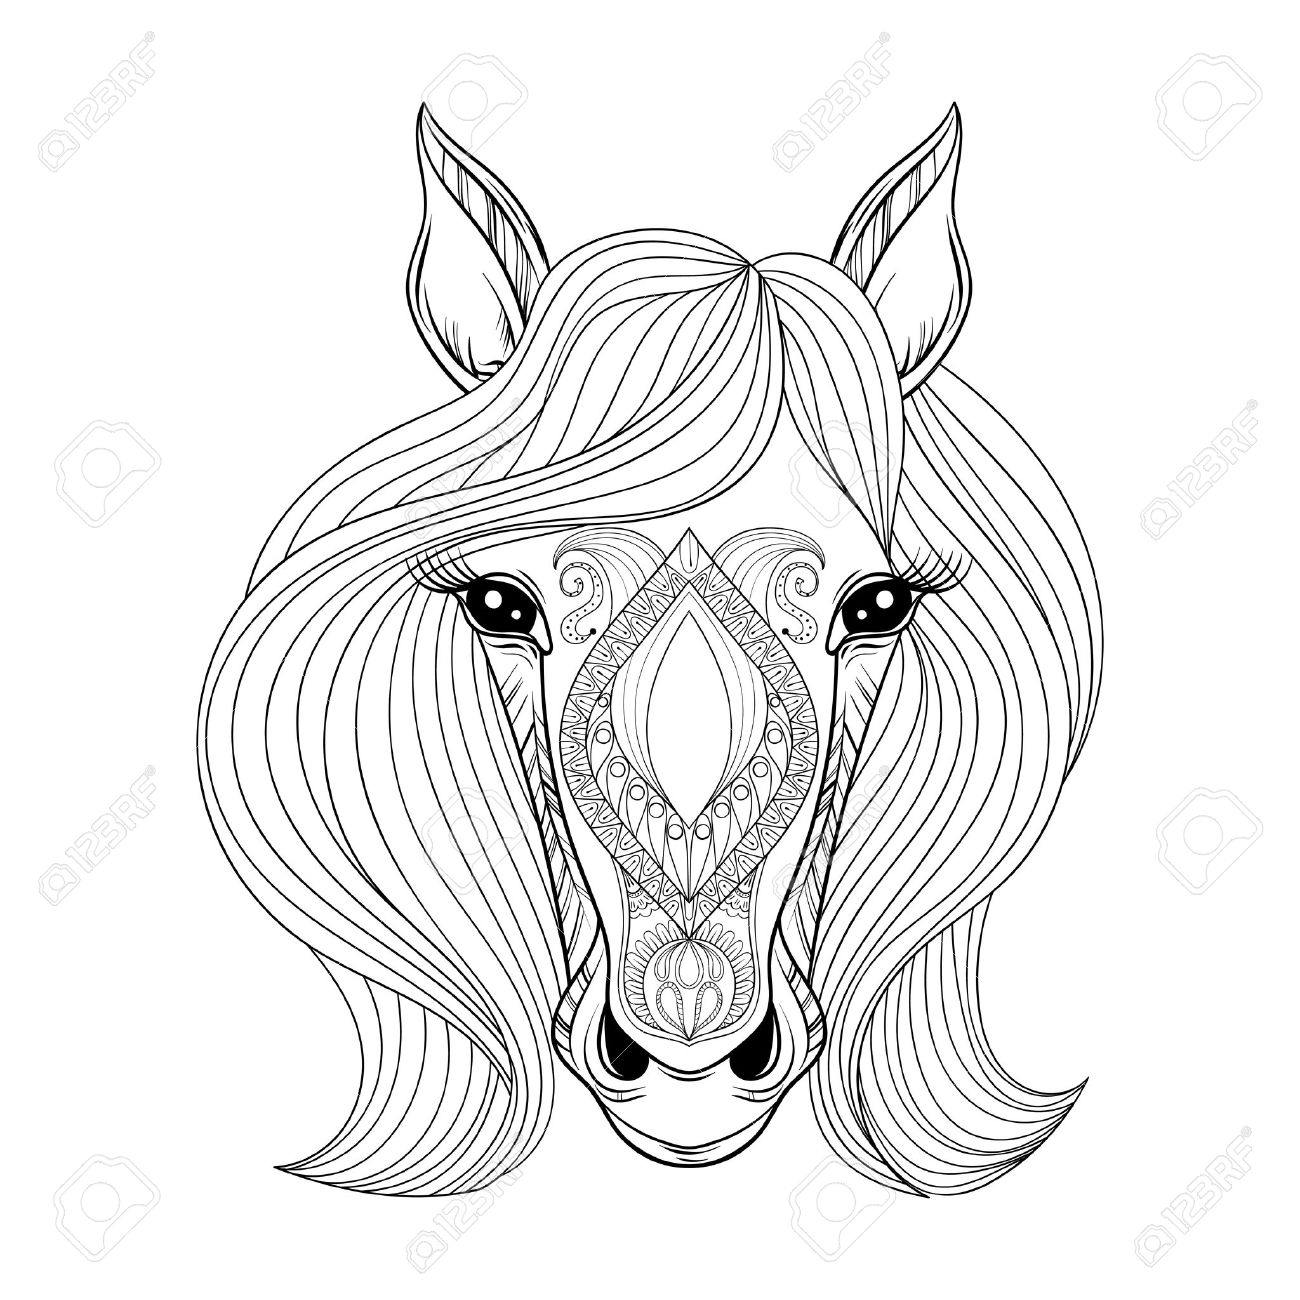 Best Horse Coloring Page Pictures - New Coloring Pages - yousuggest.us